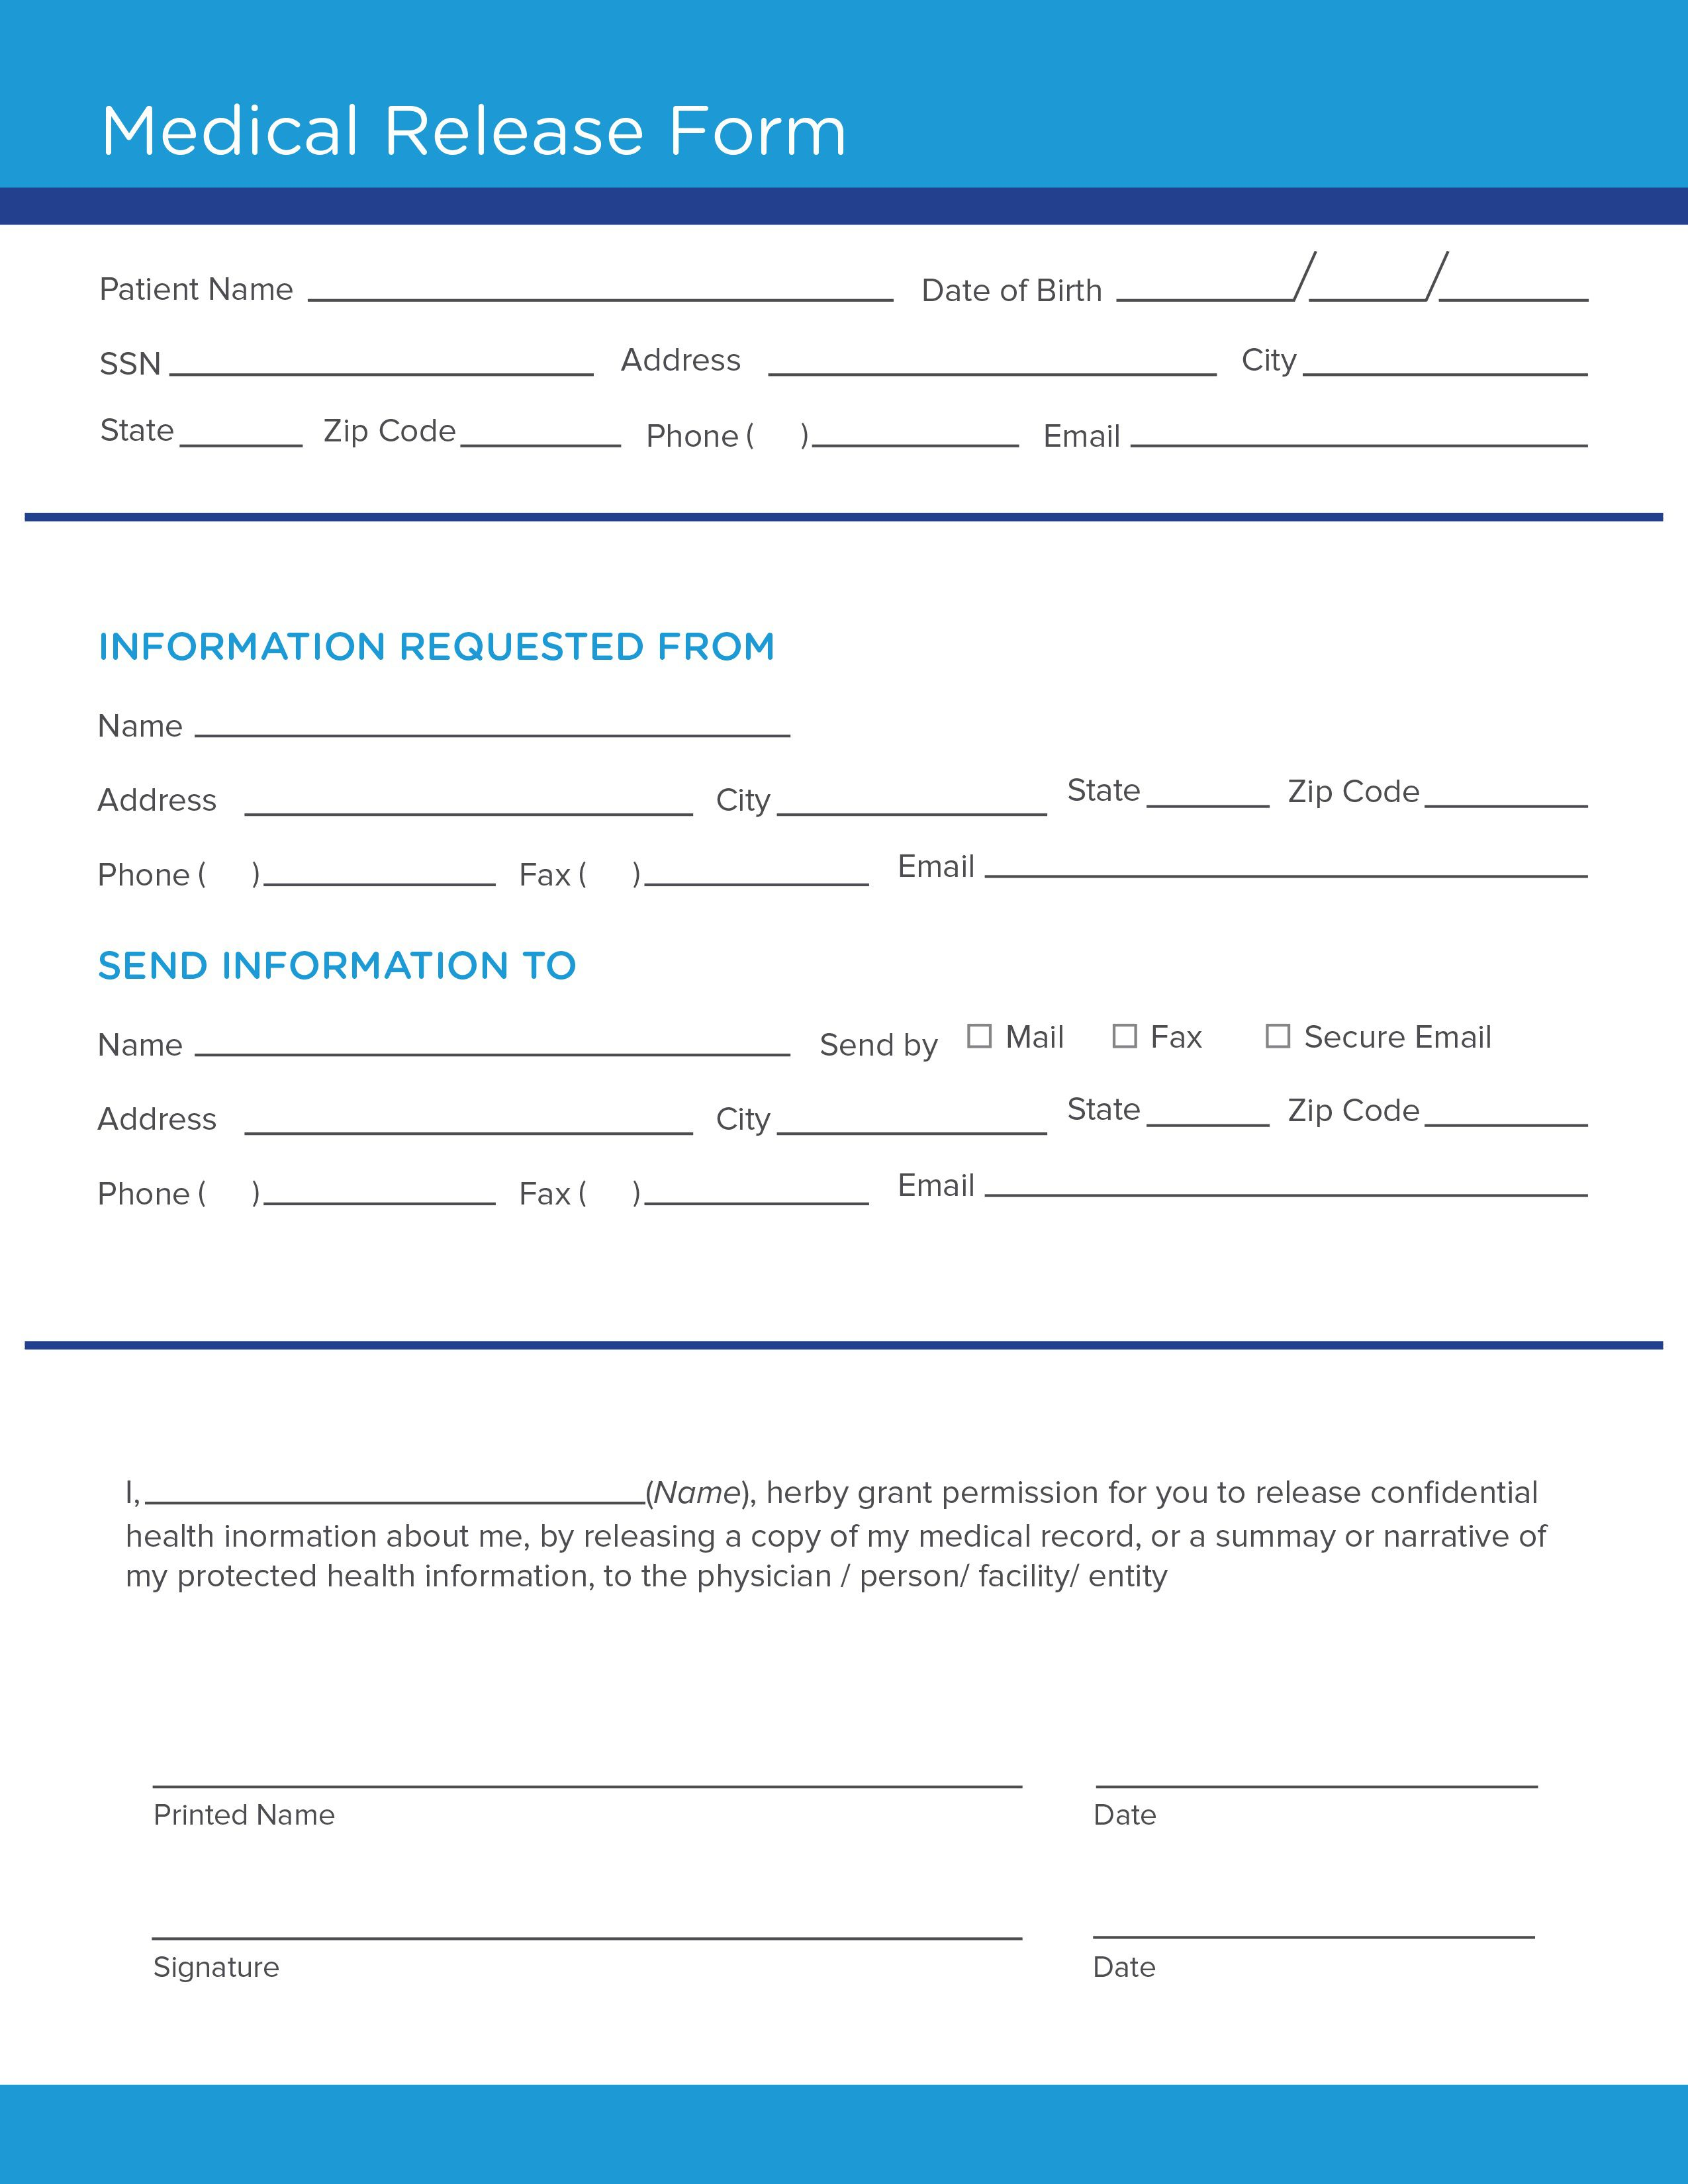 008 Surprising Medical Release Form Template High Def  Free Consent Uk For MinorFull